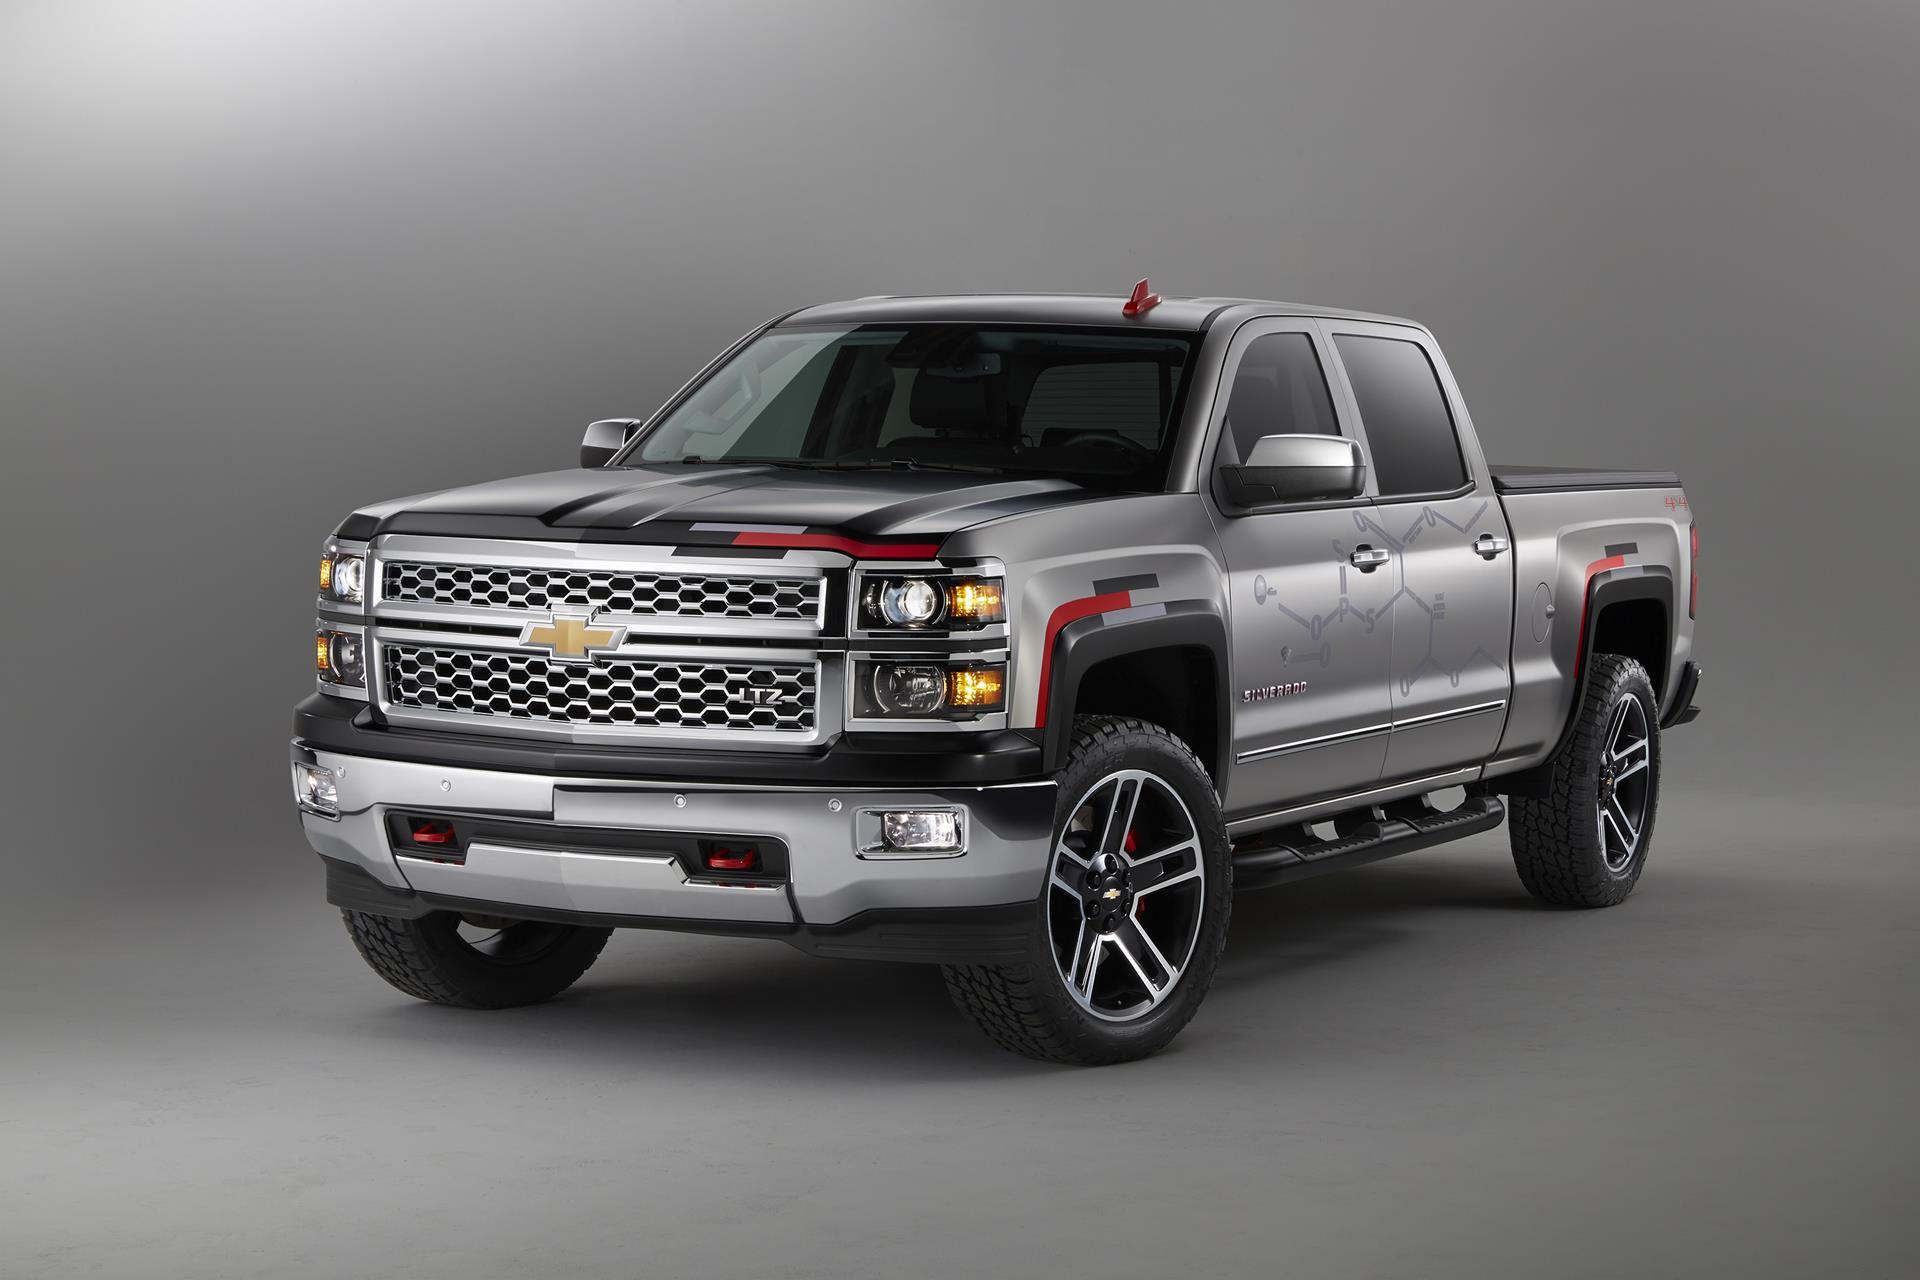 2015 Chevy Silverado Rally Edition Specs >> 2014 Chevrolet Silverado Toughnology Concept News And Information